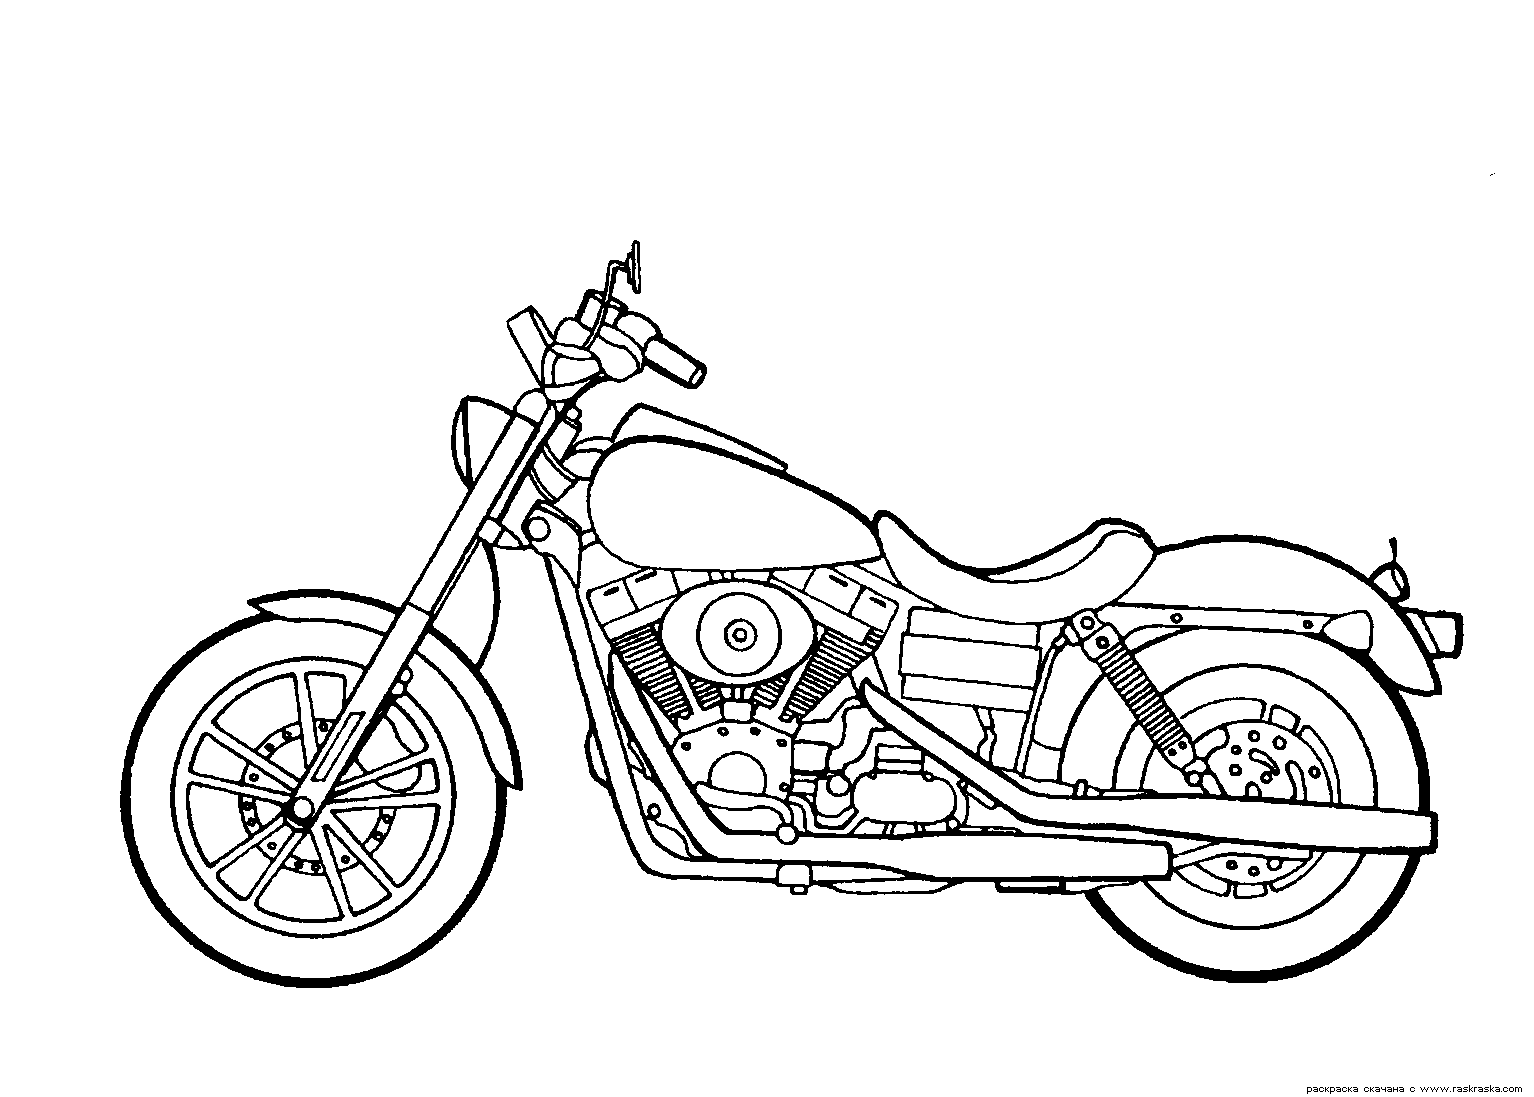 1534x1097 Motorcycles Harley Davidson Dyna Super Glide Motorcycles